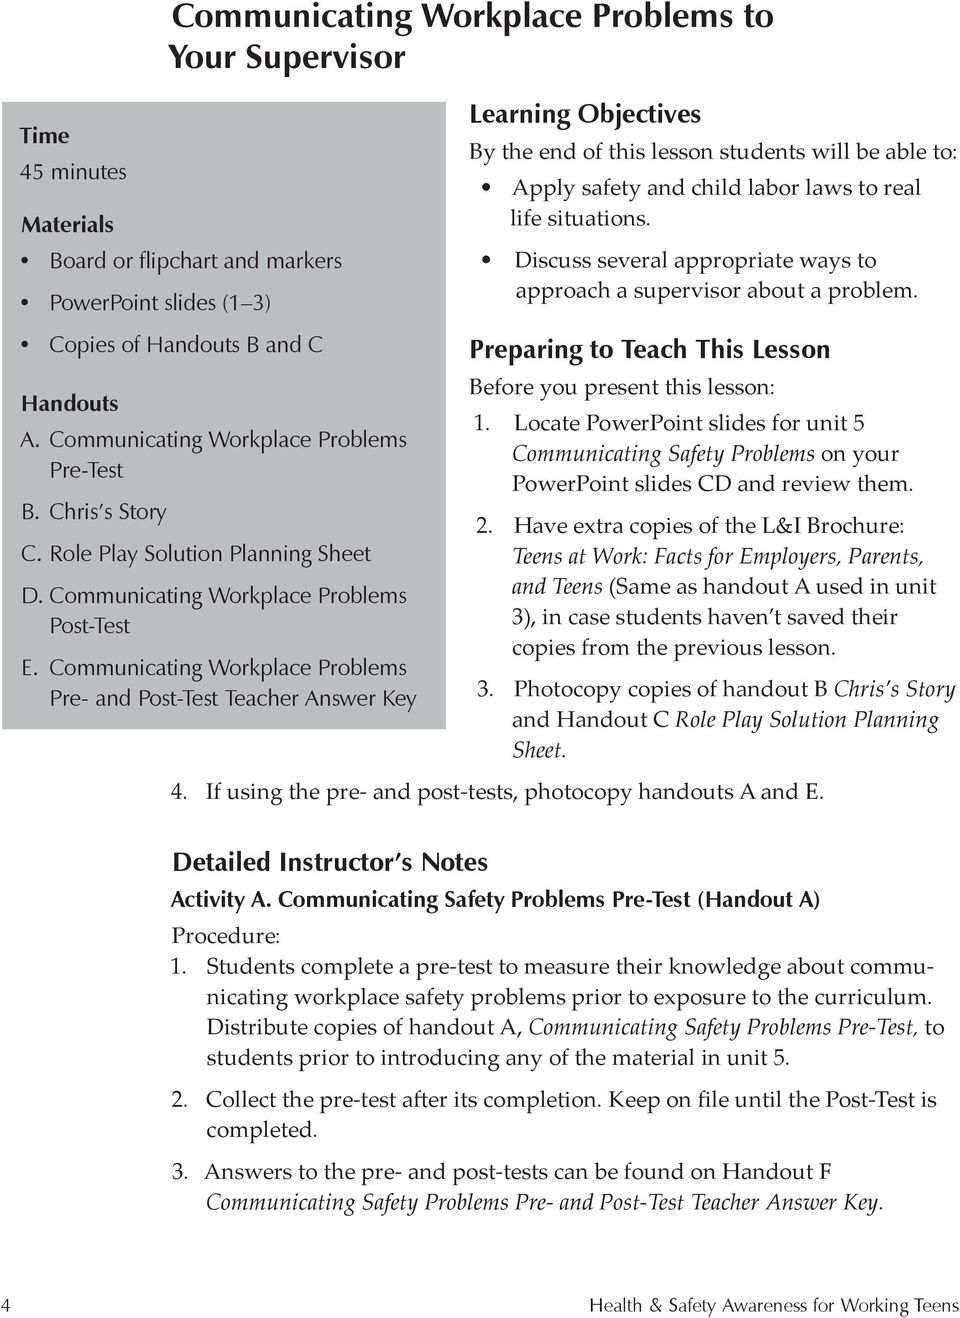 Communicating Workplace Problems Pre- and Post-Test Teacher Answer Key Learning Objectives By the end of this lesson students will be able to: Apply safety and child labor laws to real life